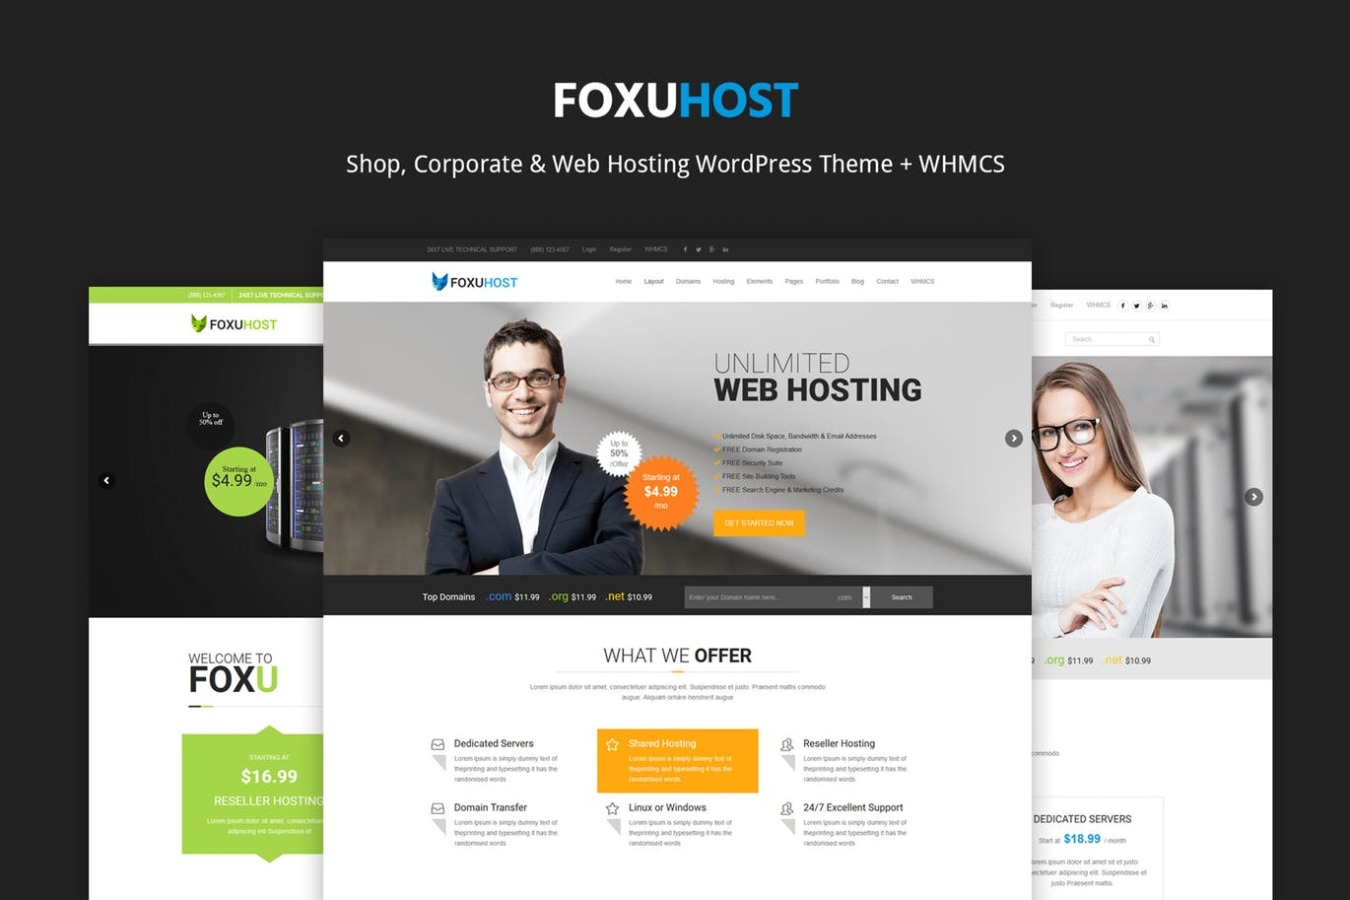 FoxuhHost – Shop, Corporate & Web Hosting Word...